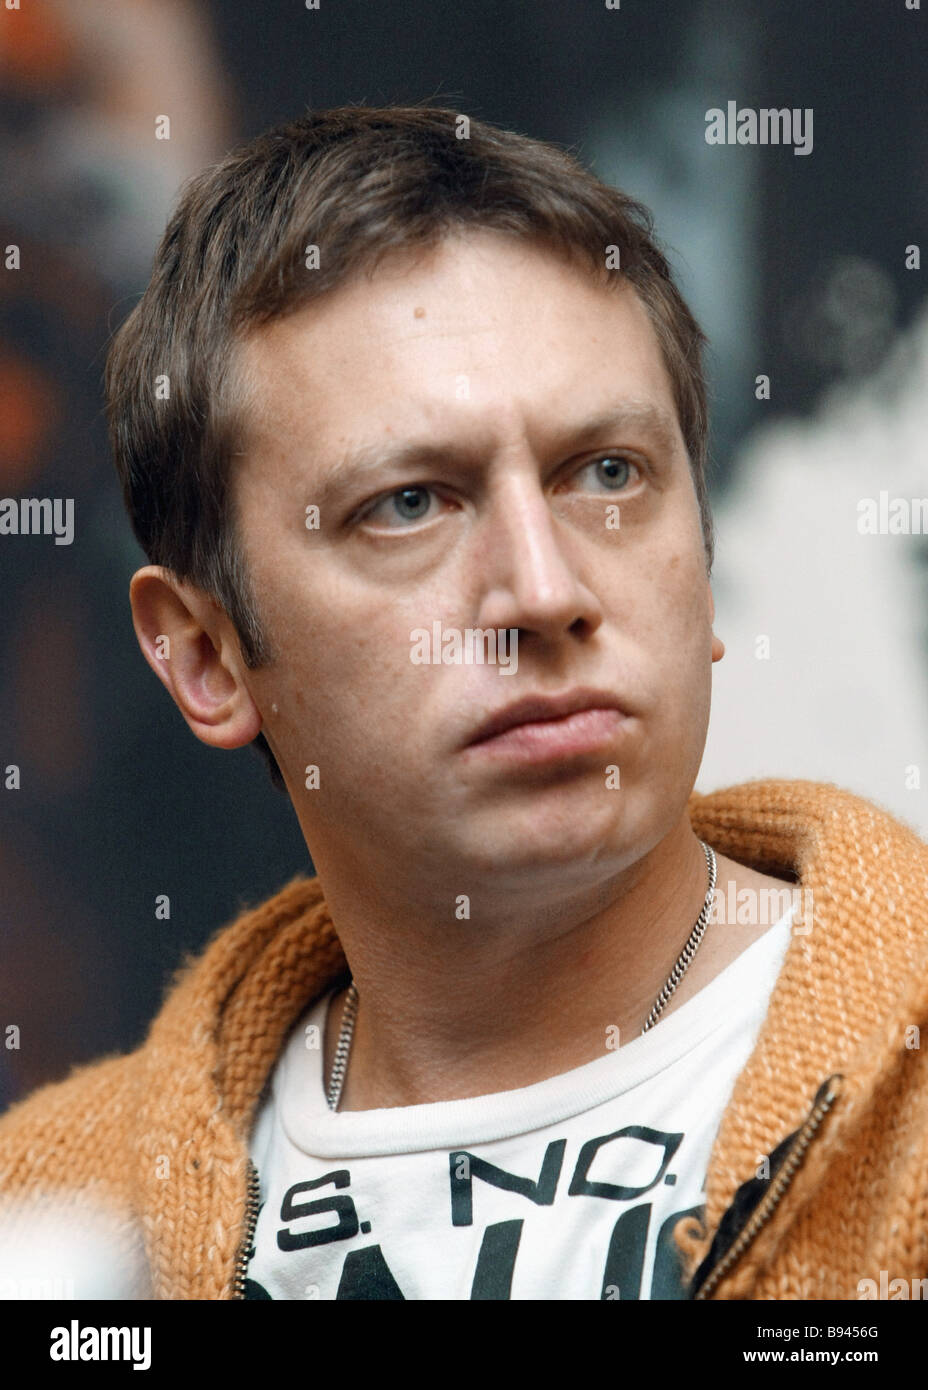 Actor Mikhail Trukhin during presentation of film project D Day - Stock Image